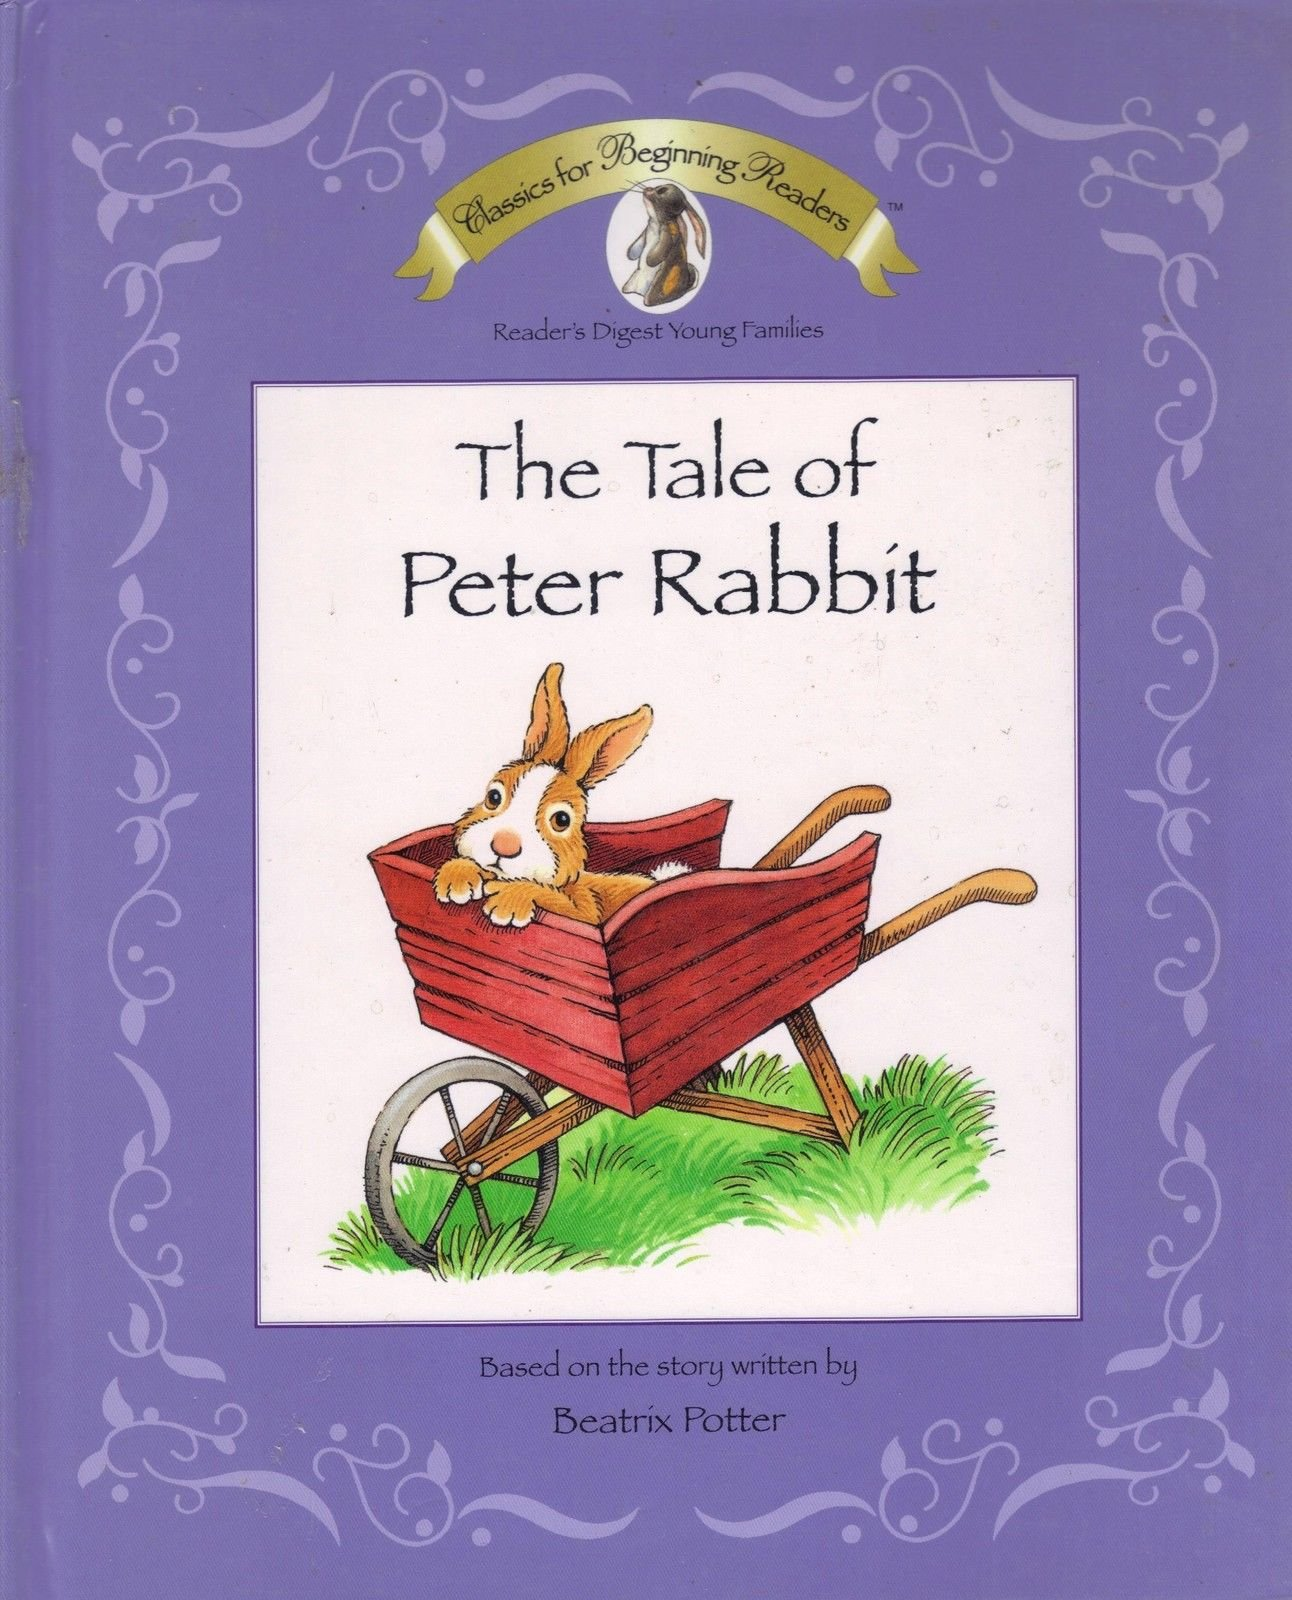 The tale of Peter Rabbit (Classics for beginning readers) pdf